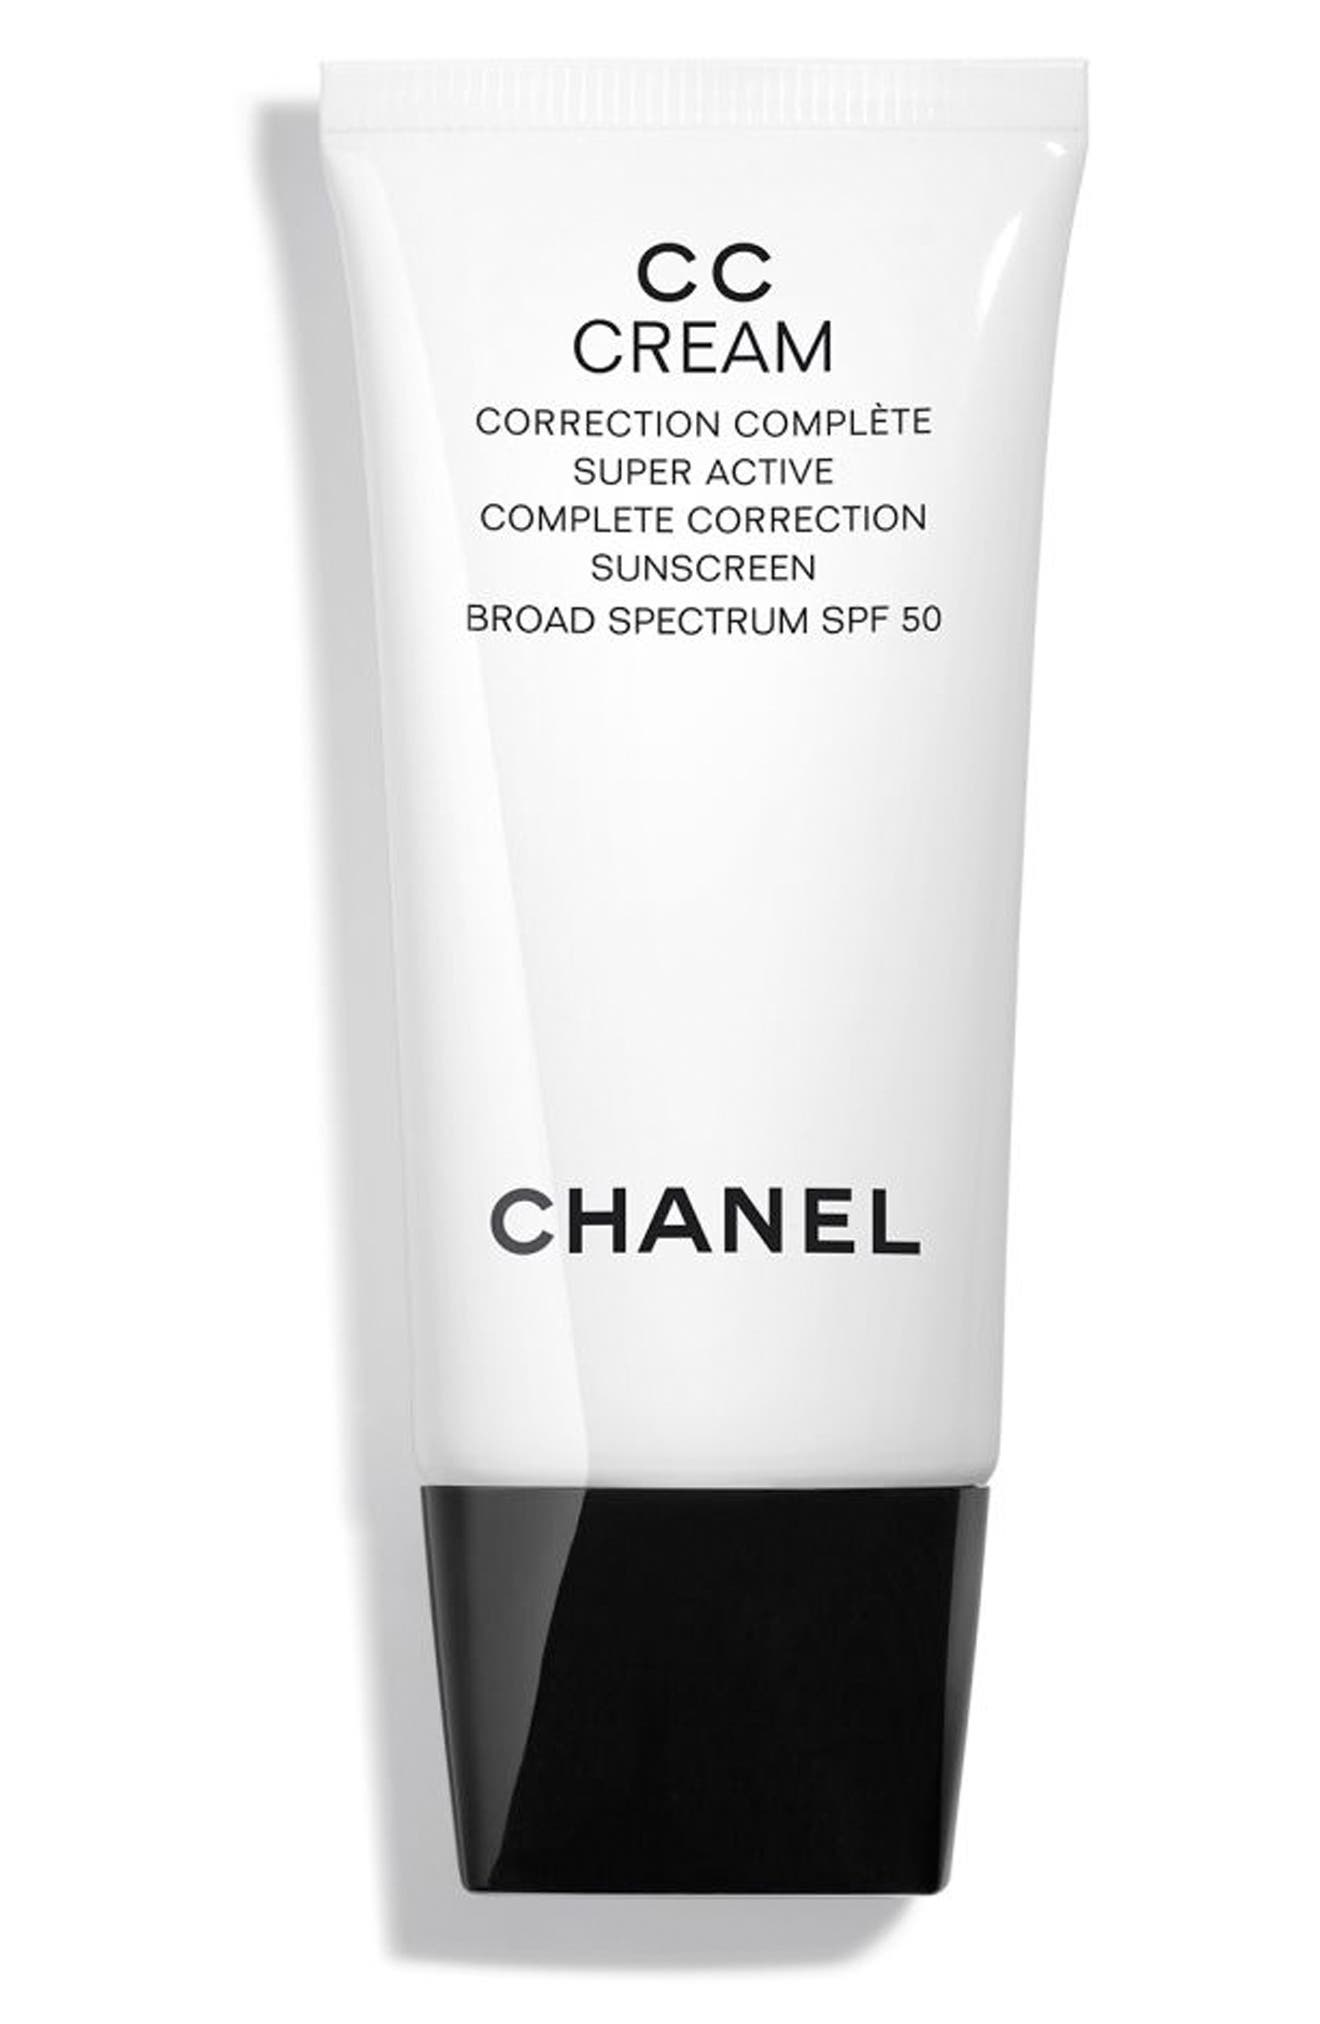 CC CREAM Super Active Correction Complete Sunscreen SPF 50,                             Main thumbnail 1, color,                             BEIGE 10